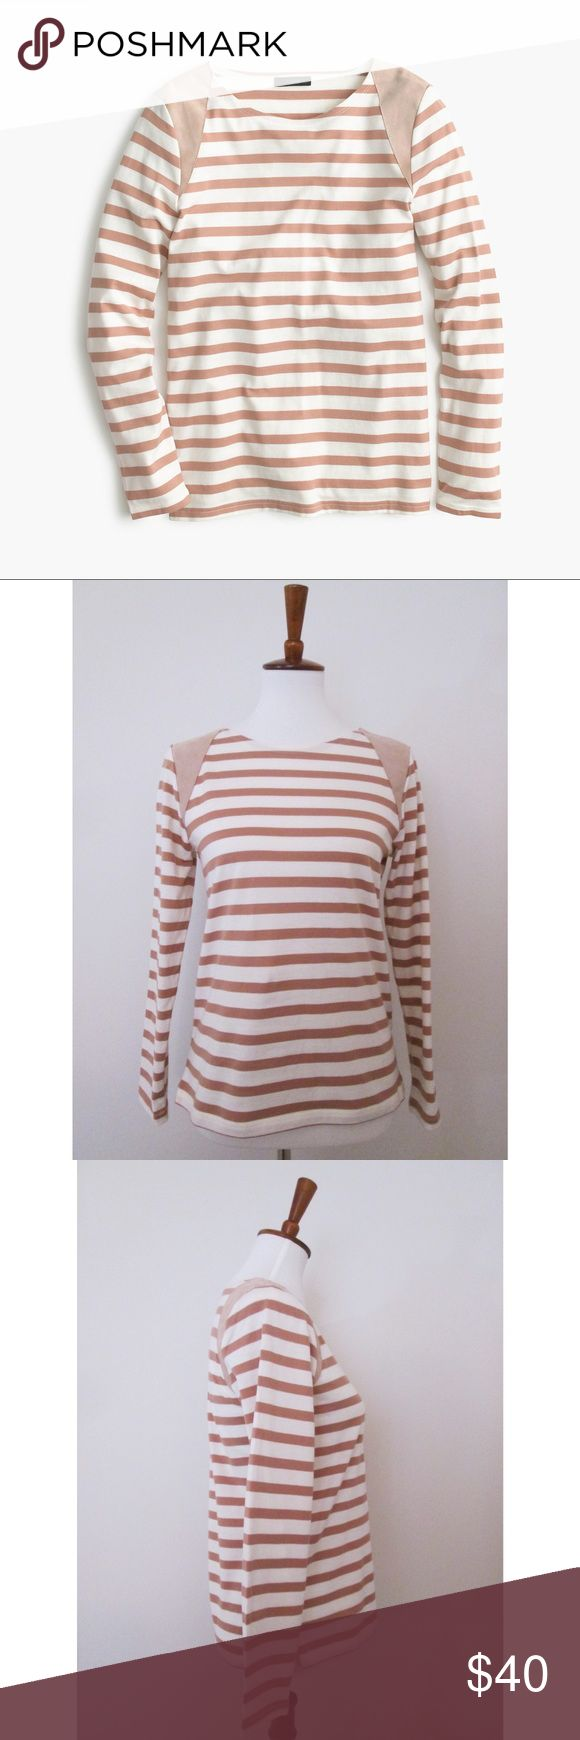 420 Best My Posh Closet Images On Pinterest Flaws 30th And Pockets Austin Wedges Montana Beige J Crew Striped Suede Shoulder T Shirt Nude